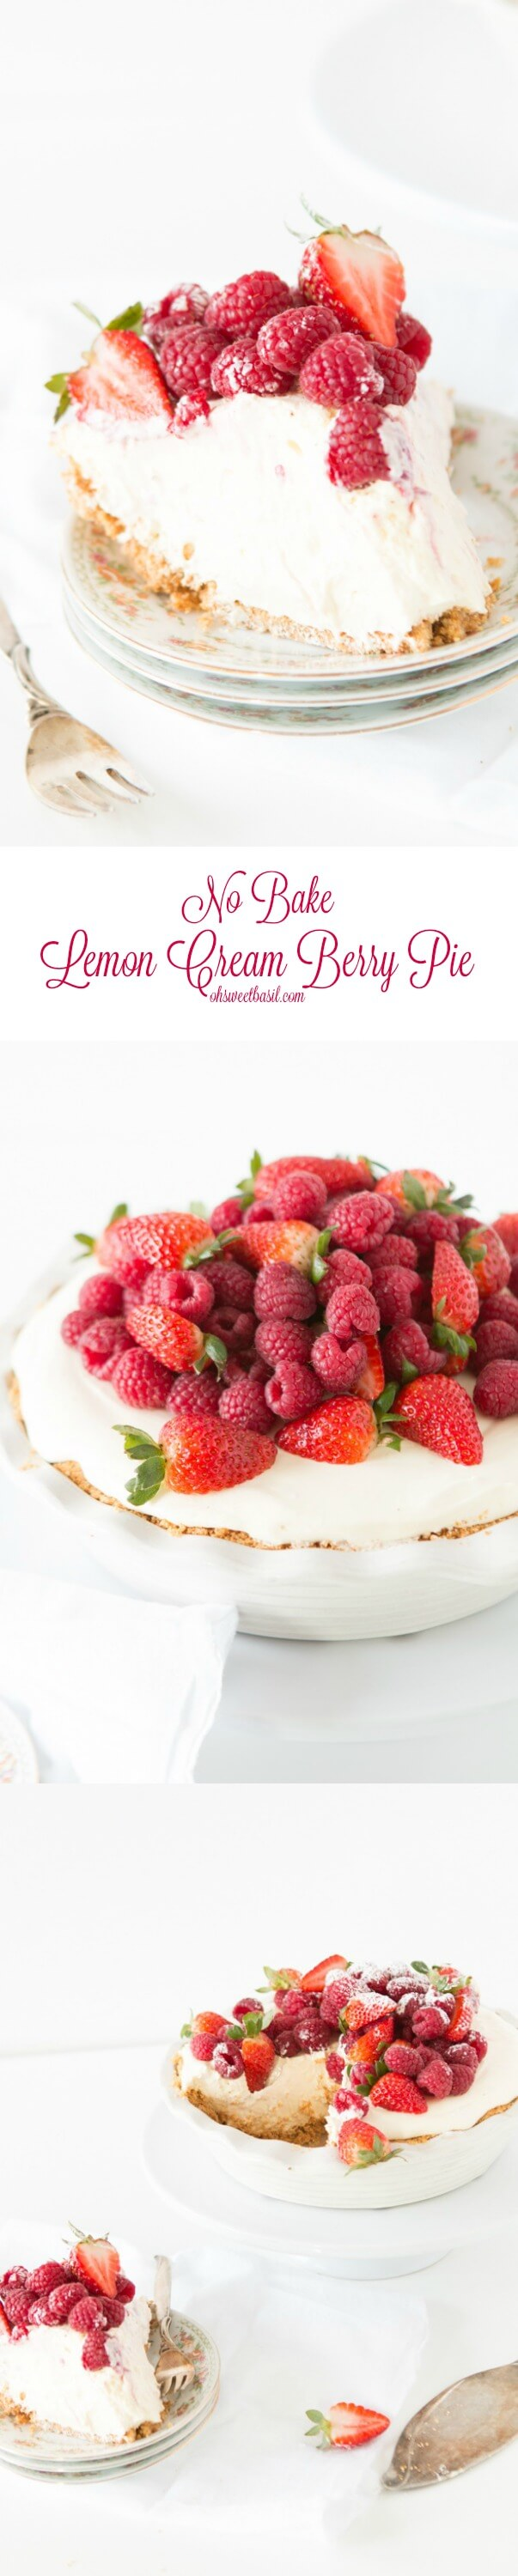 My absolute favorite no bake lemon cream berry pie! It's so easy but looks so fancy! ohsweetbasil.com